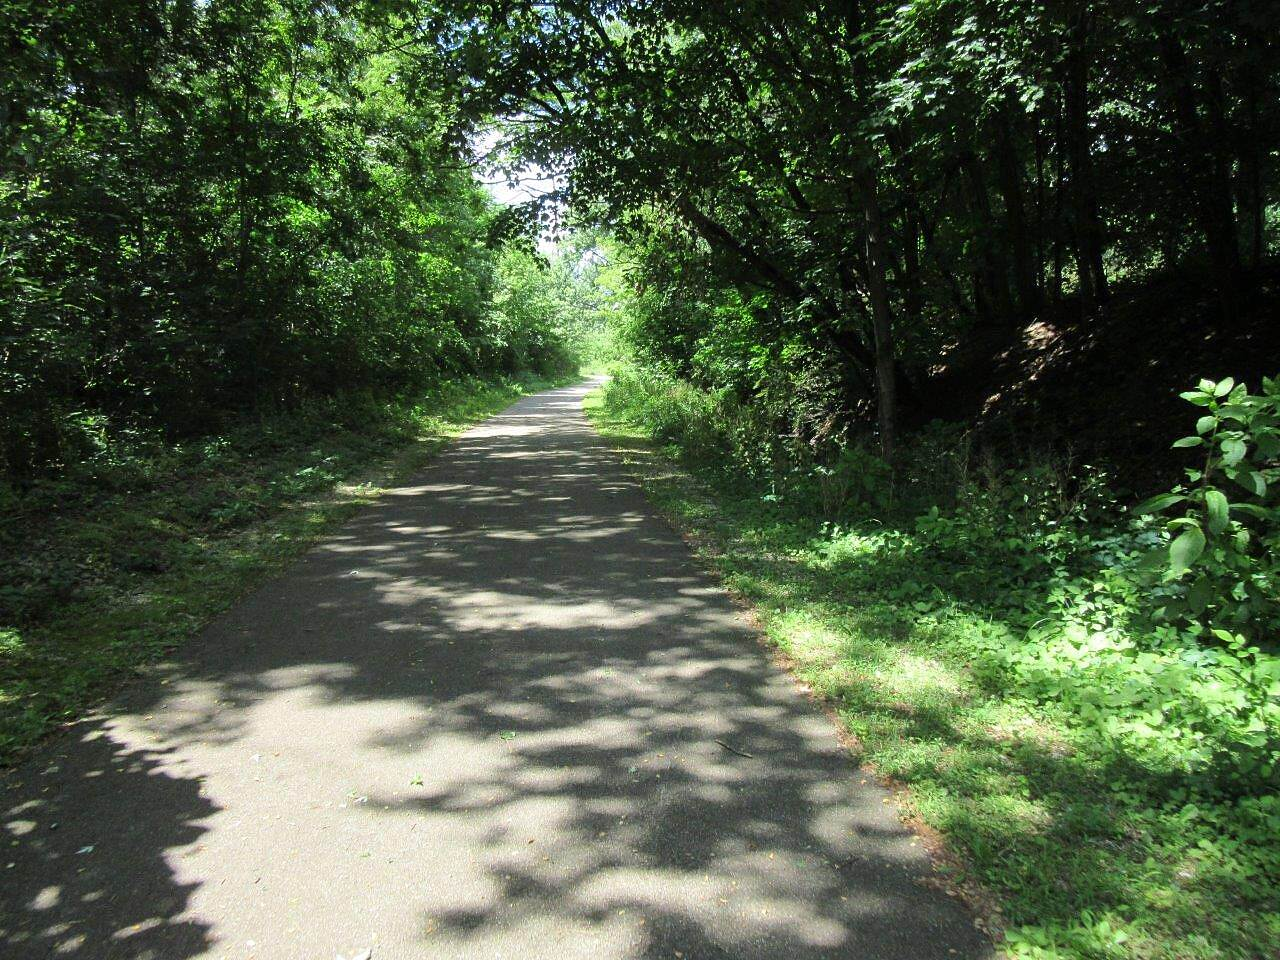 Freedom Trail (OH) Nice shaded area-June, 2017 Trail offers open areas (full sun) and shaded with trees areas!